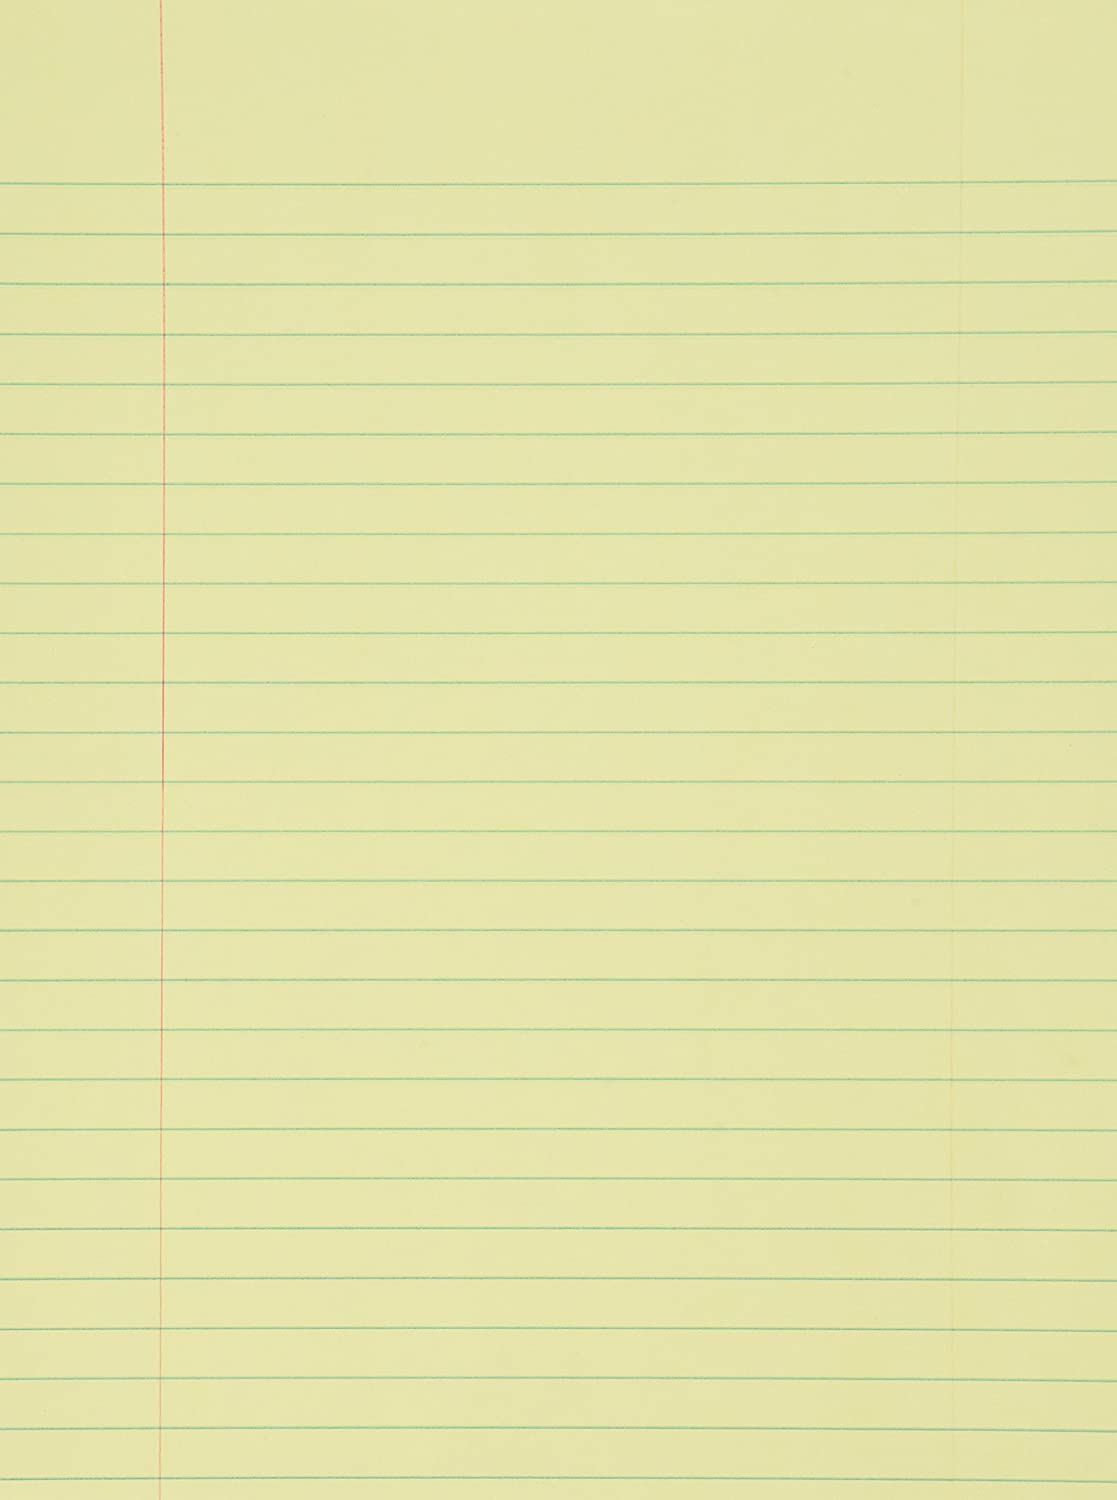 loose leaf yellow lined paper